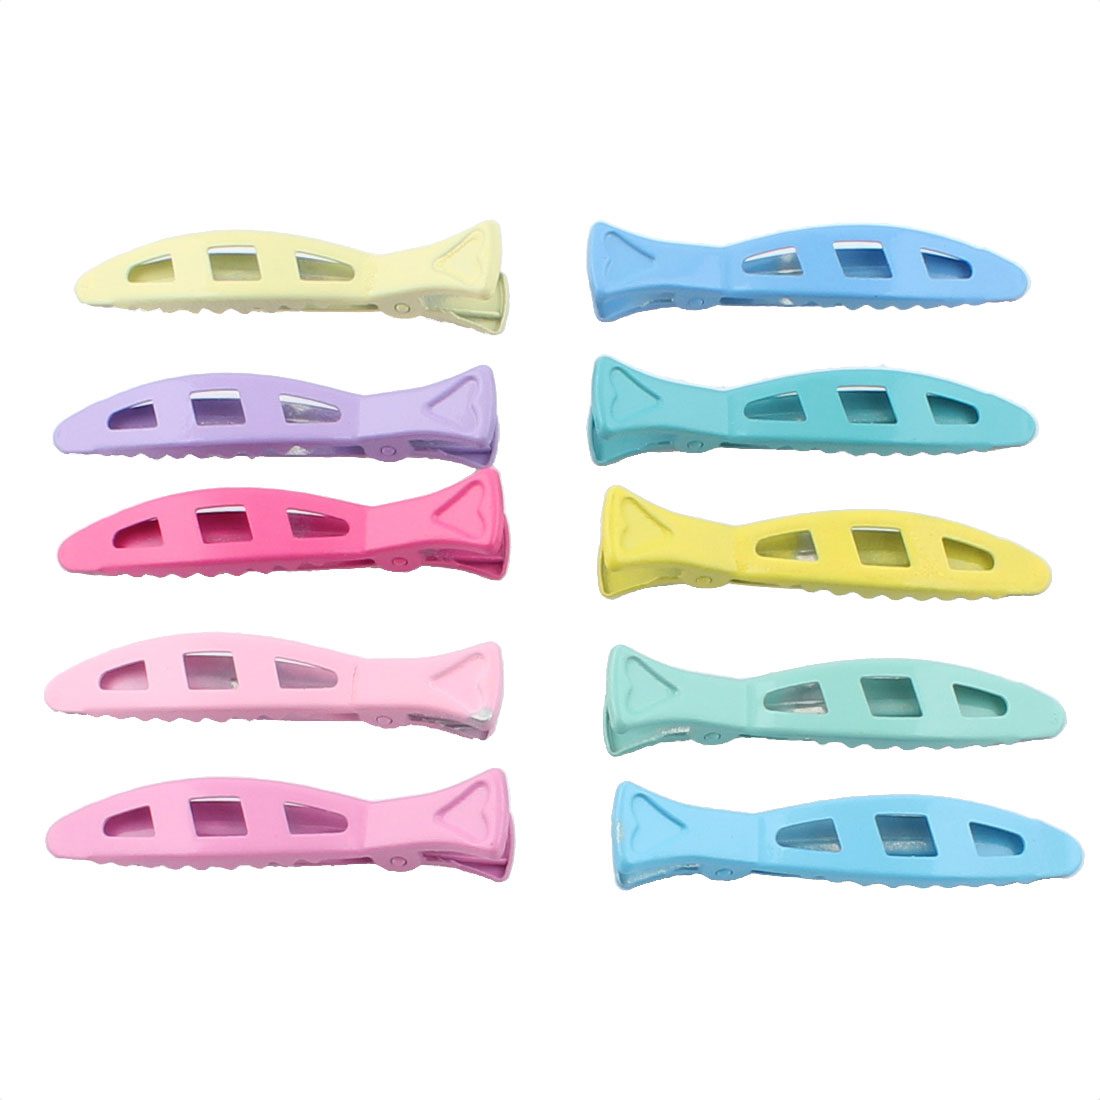 Metal Fish Shape DIY Hairstyle Alligator Hair Clip Barrette Assorted Color 10pcs